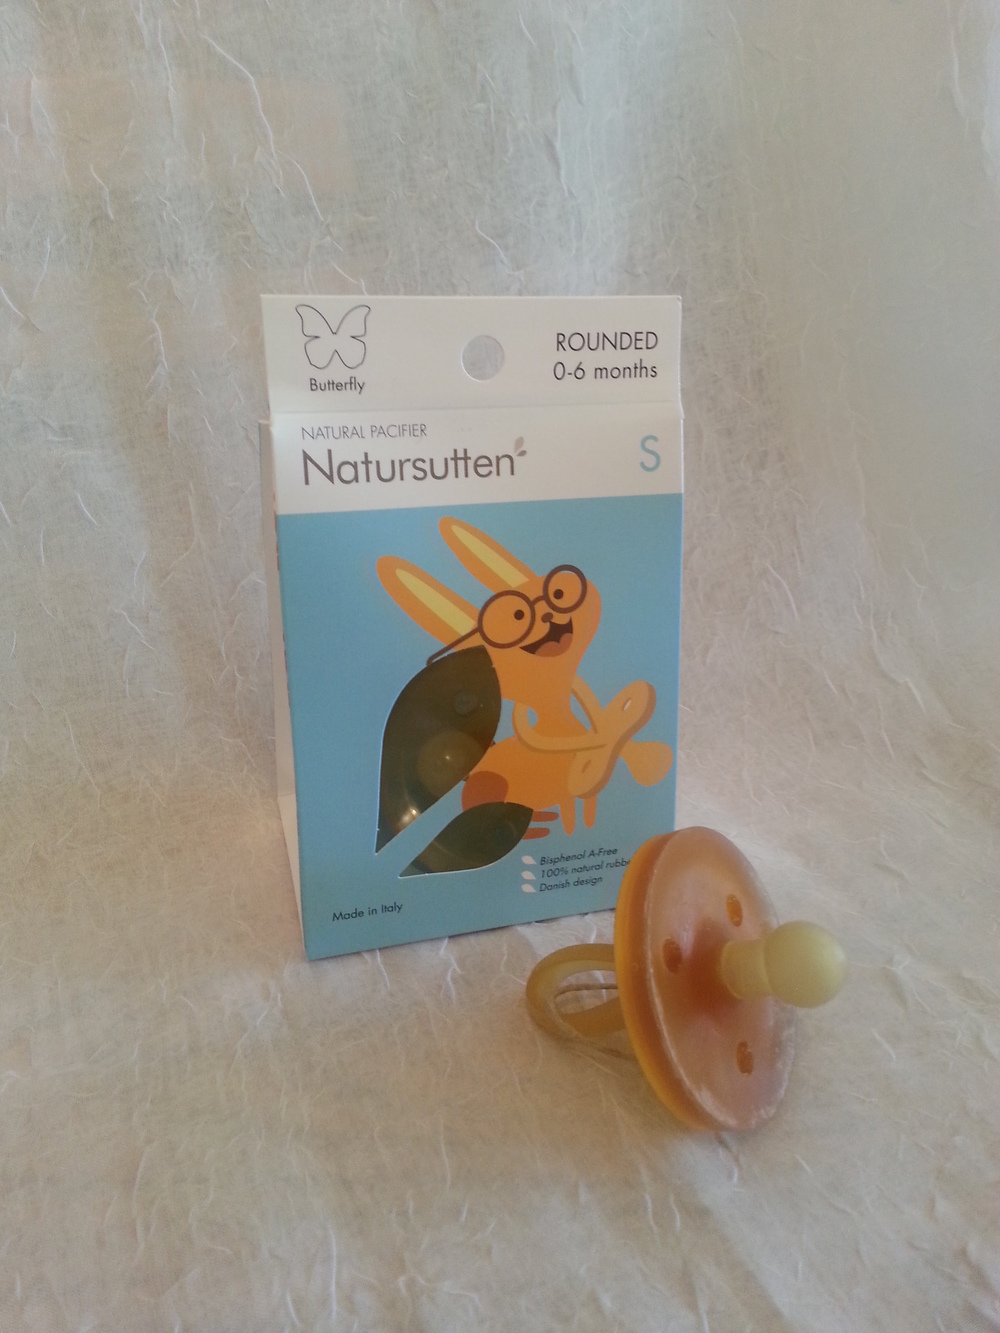 Natursutten Natural Rubber Rounded Pacifier size Small    $8.95    Wants 1 PURCHASED